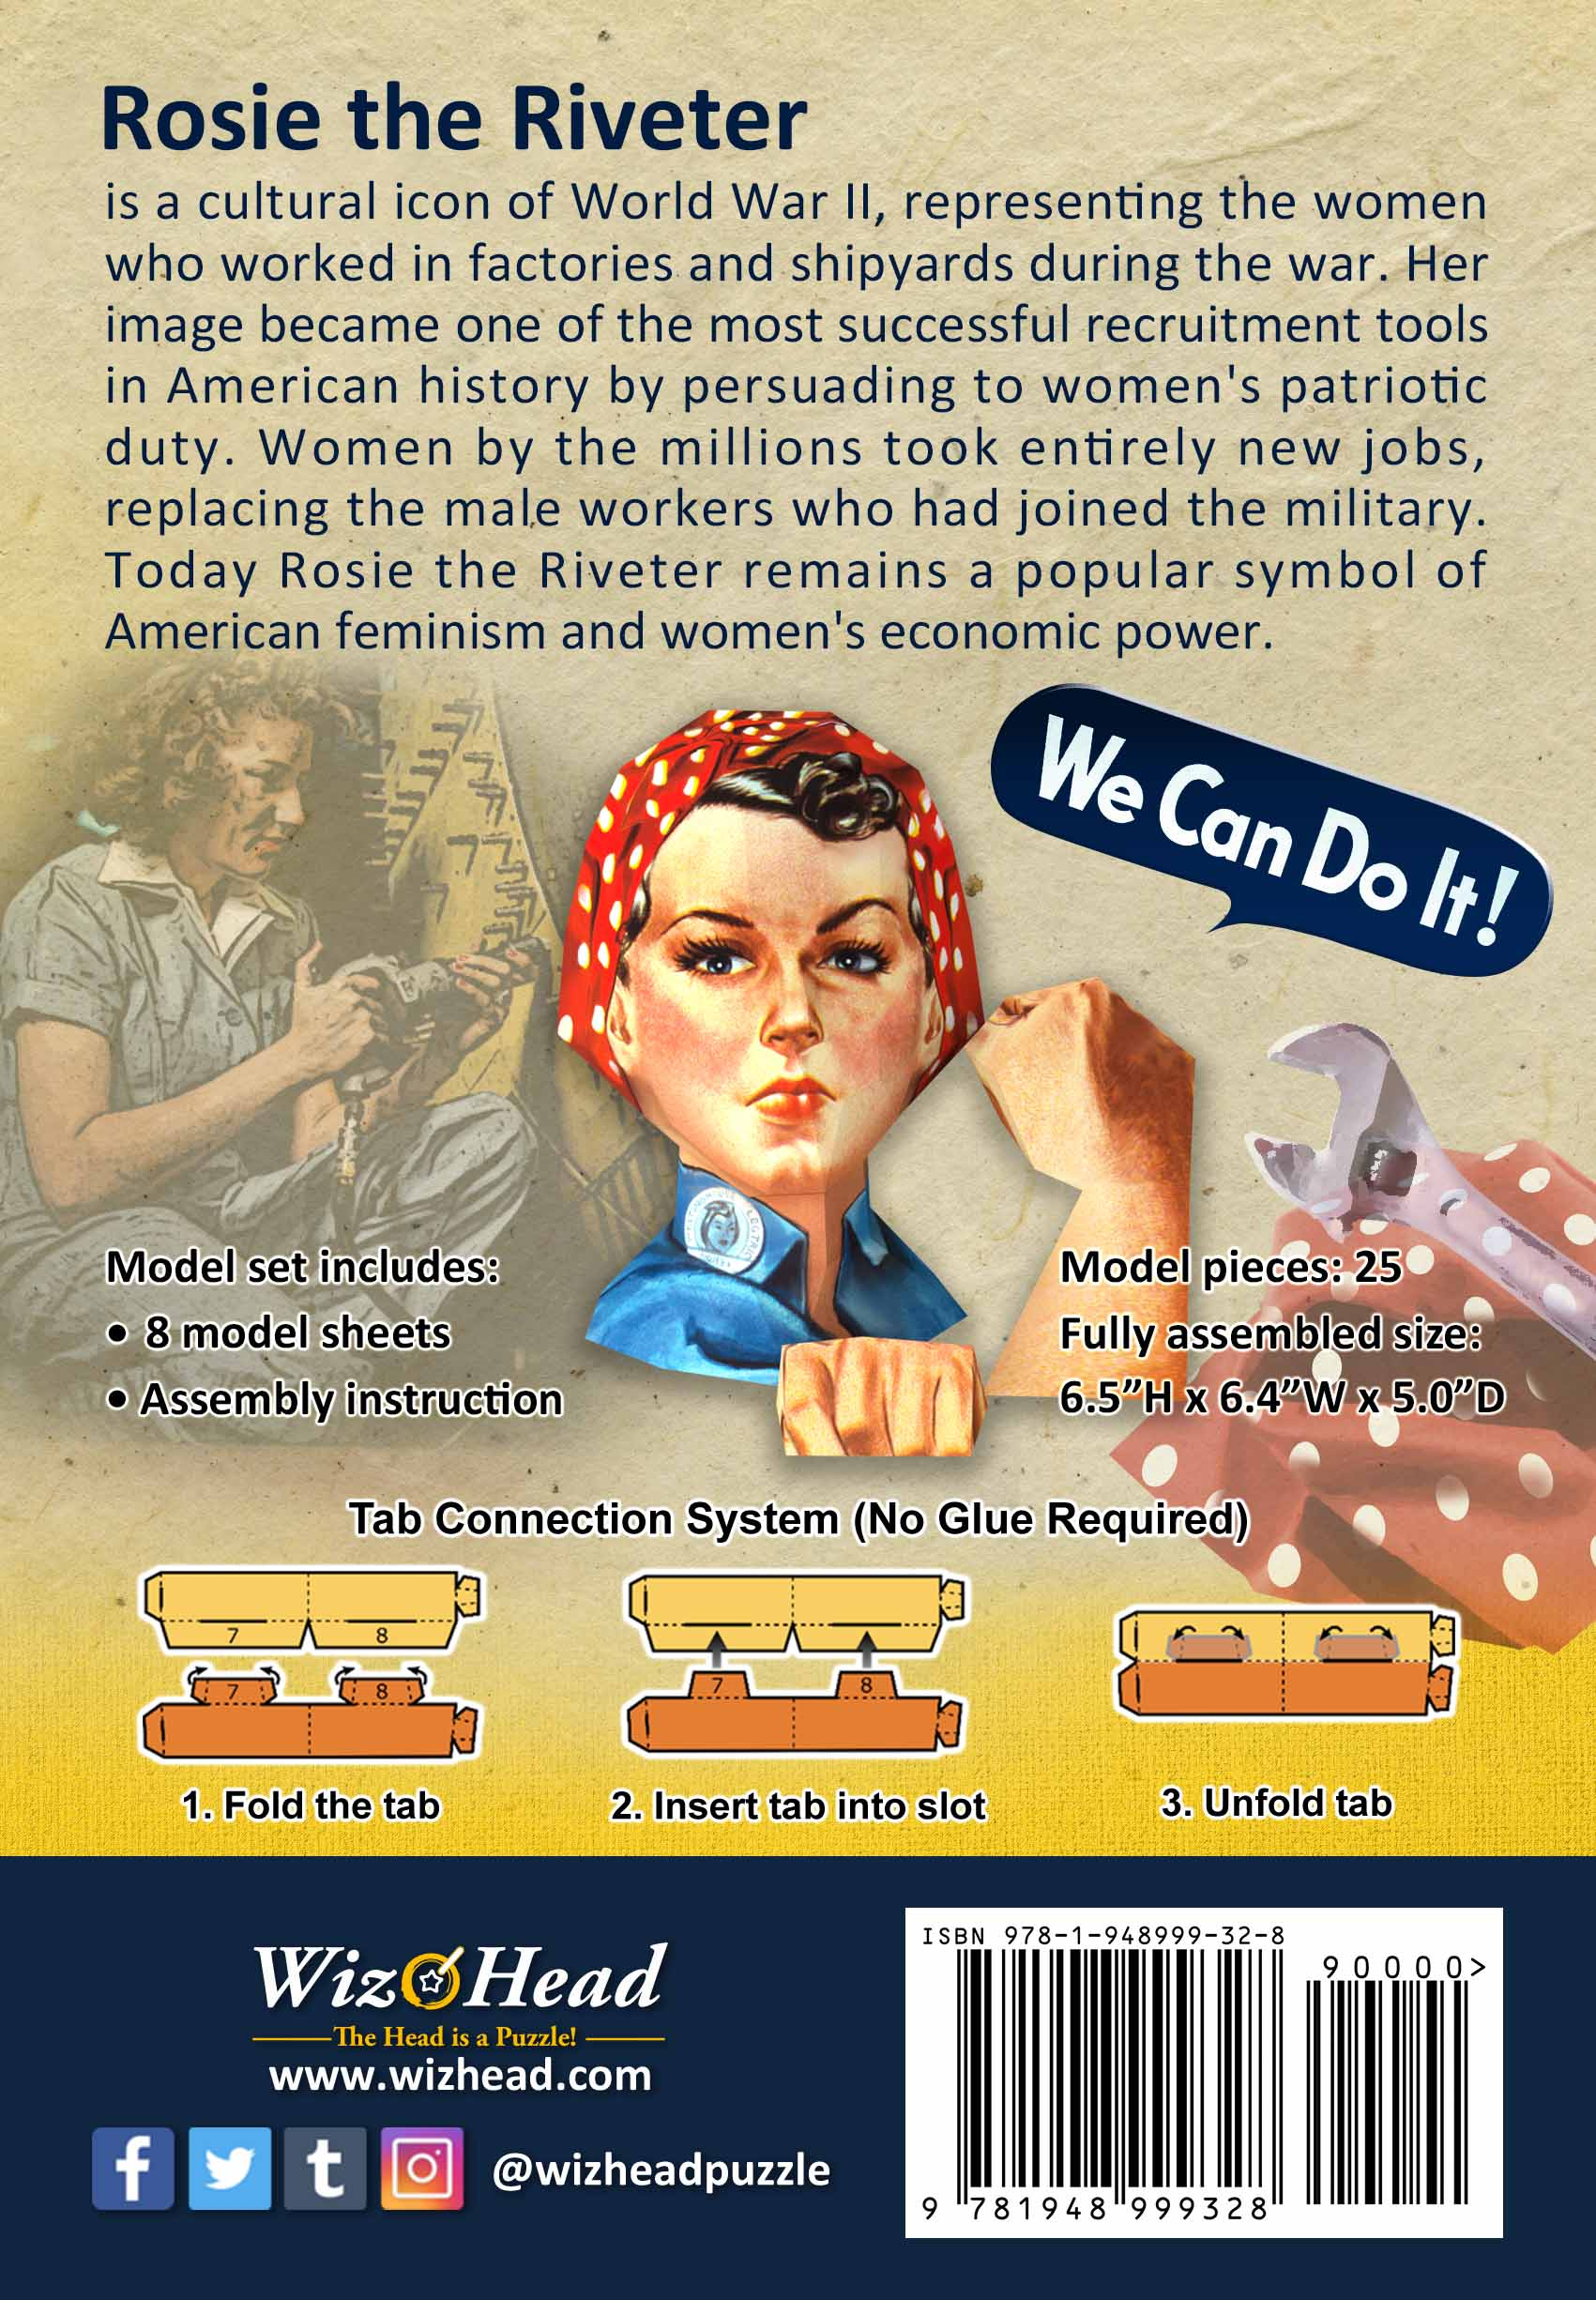 Rosie the Riveter (Full Size)